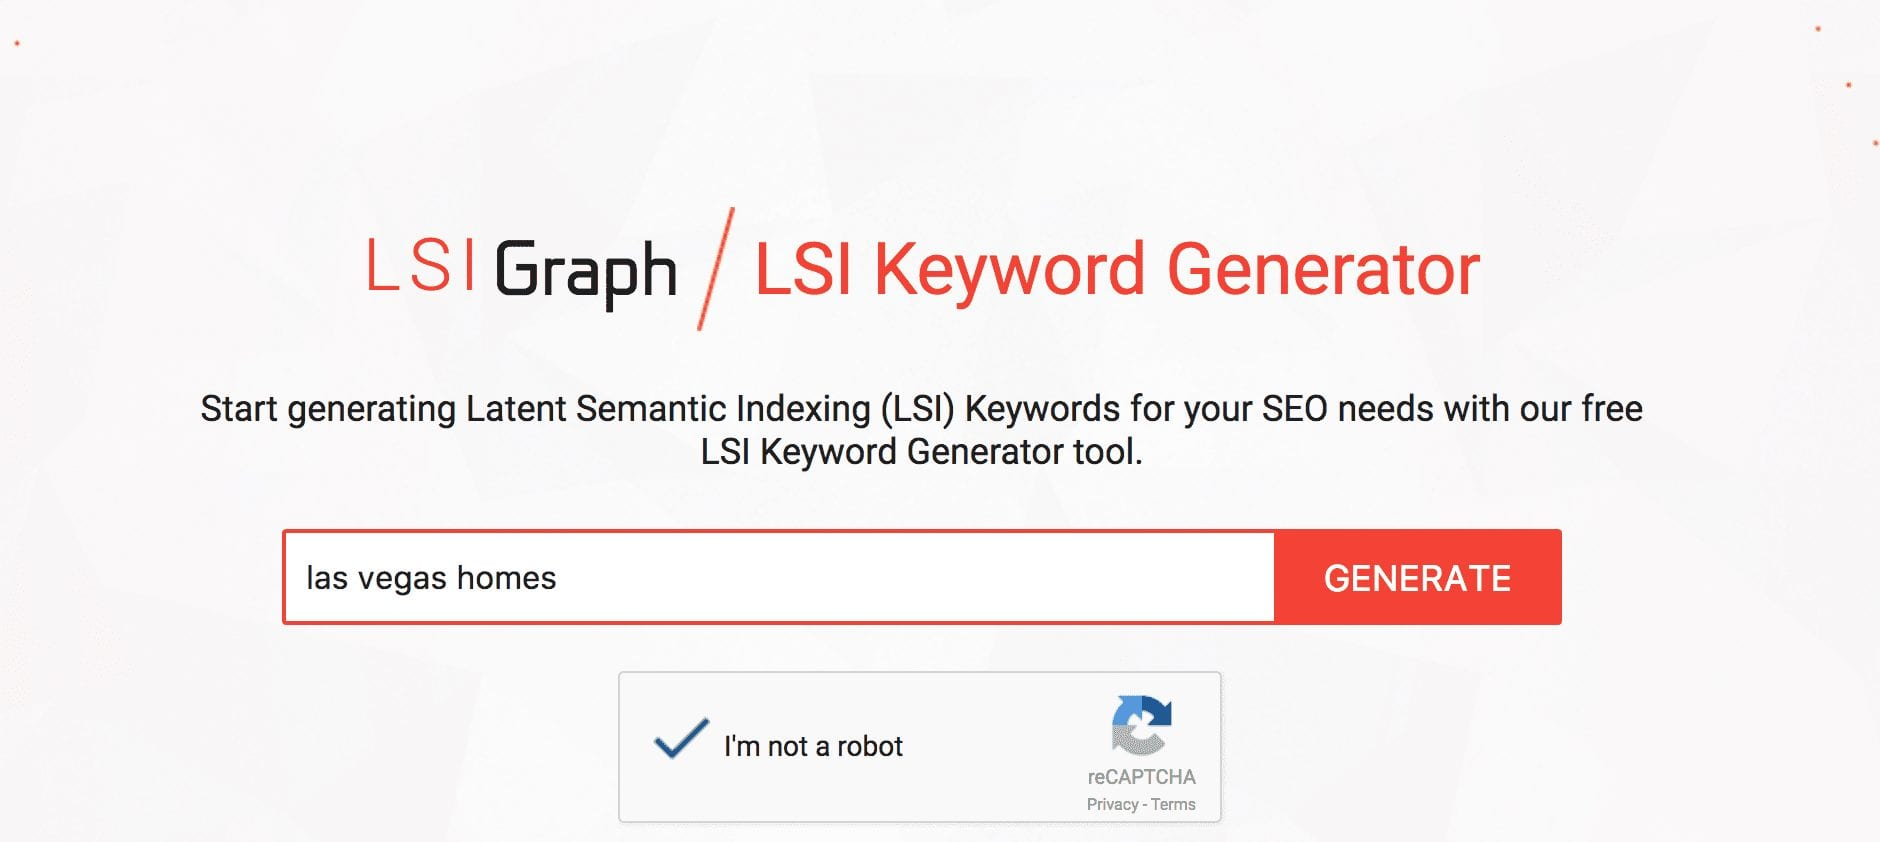 LSI Graph is a Keyword Generator showing a box for the head term to return longtail responses